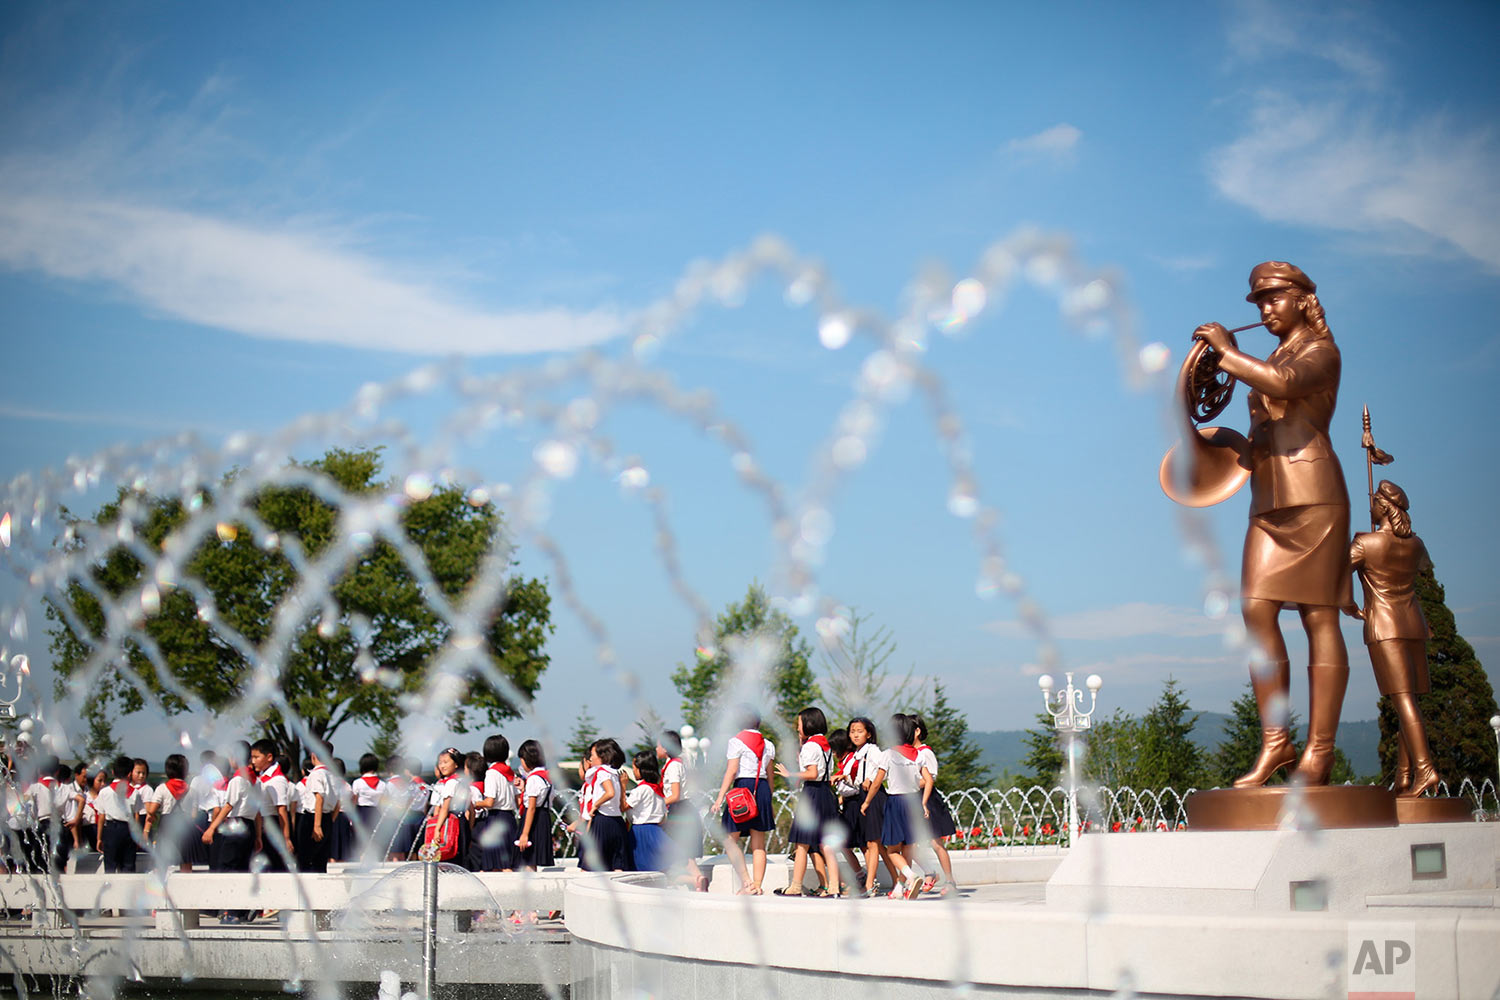 School children tour the park surrounding Kumsusan Palace of the Sun, the mausoleum where the bodies of late leaders Kim Il Sung and Kim Jong Il lie embalmed, in Pyongyang, North Korea, on Thursday, July 25, 2013. (AP Photo/Wong Maye-E)